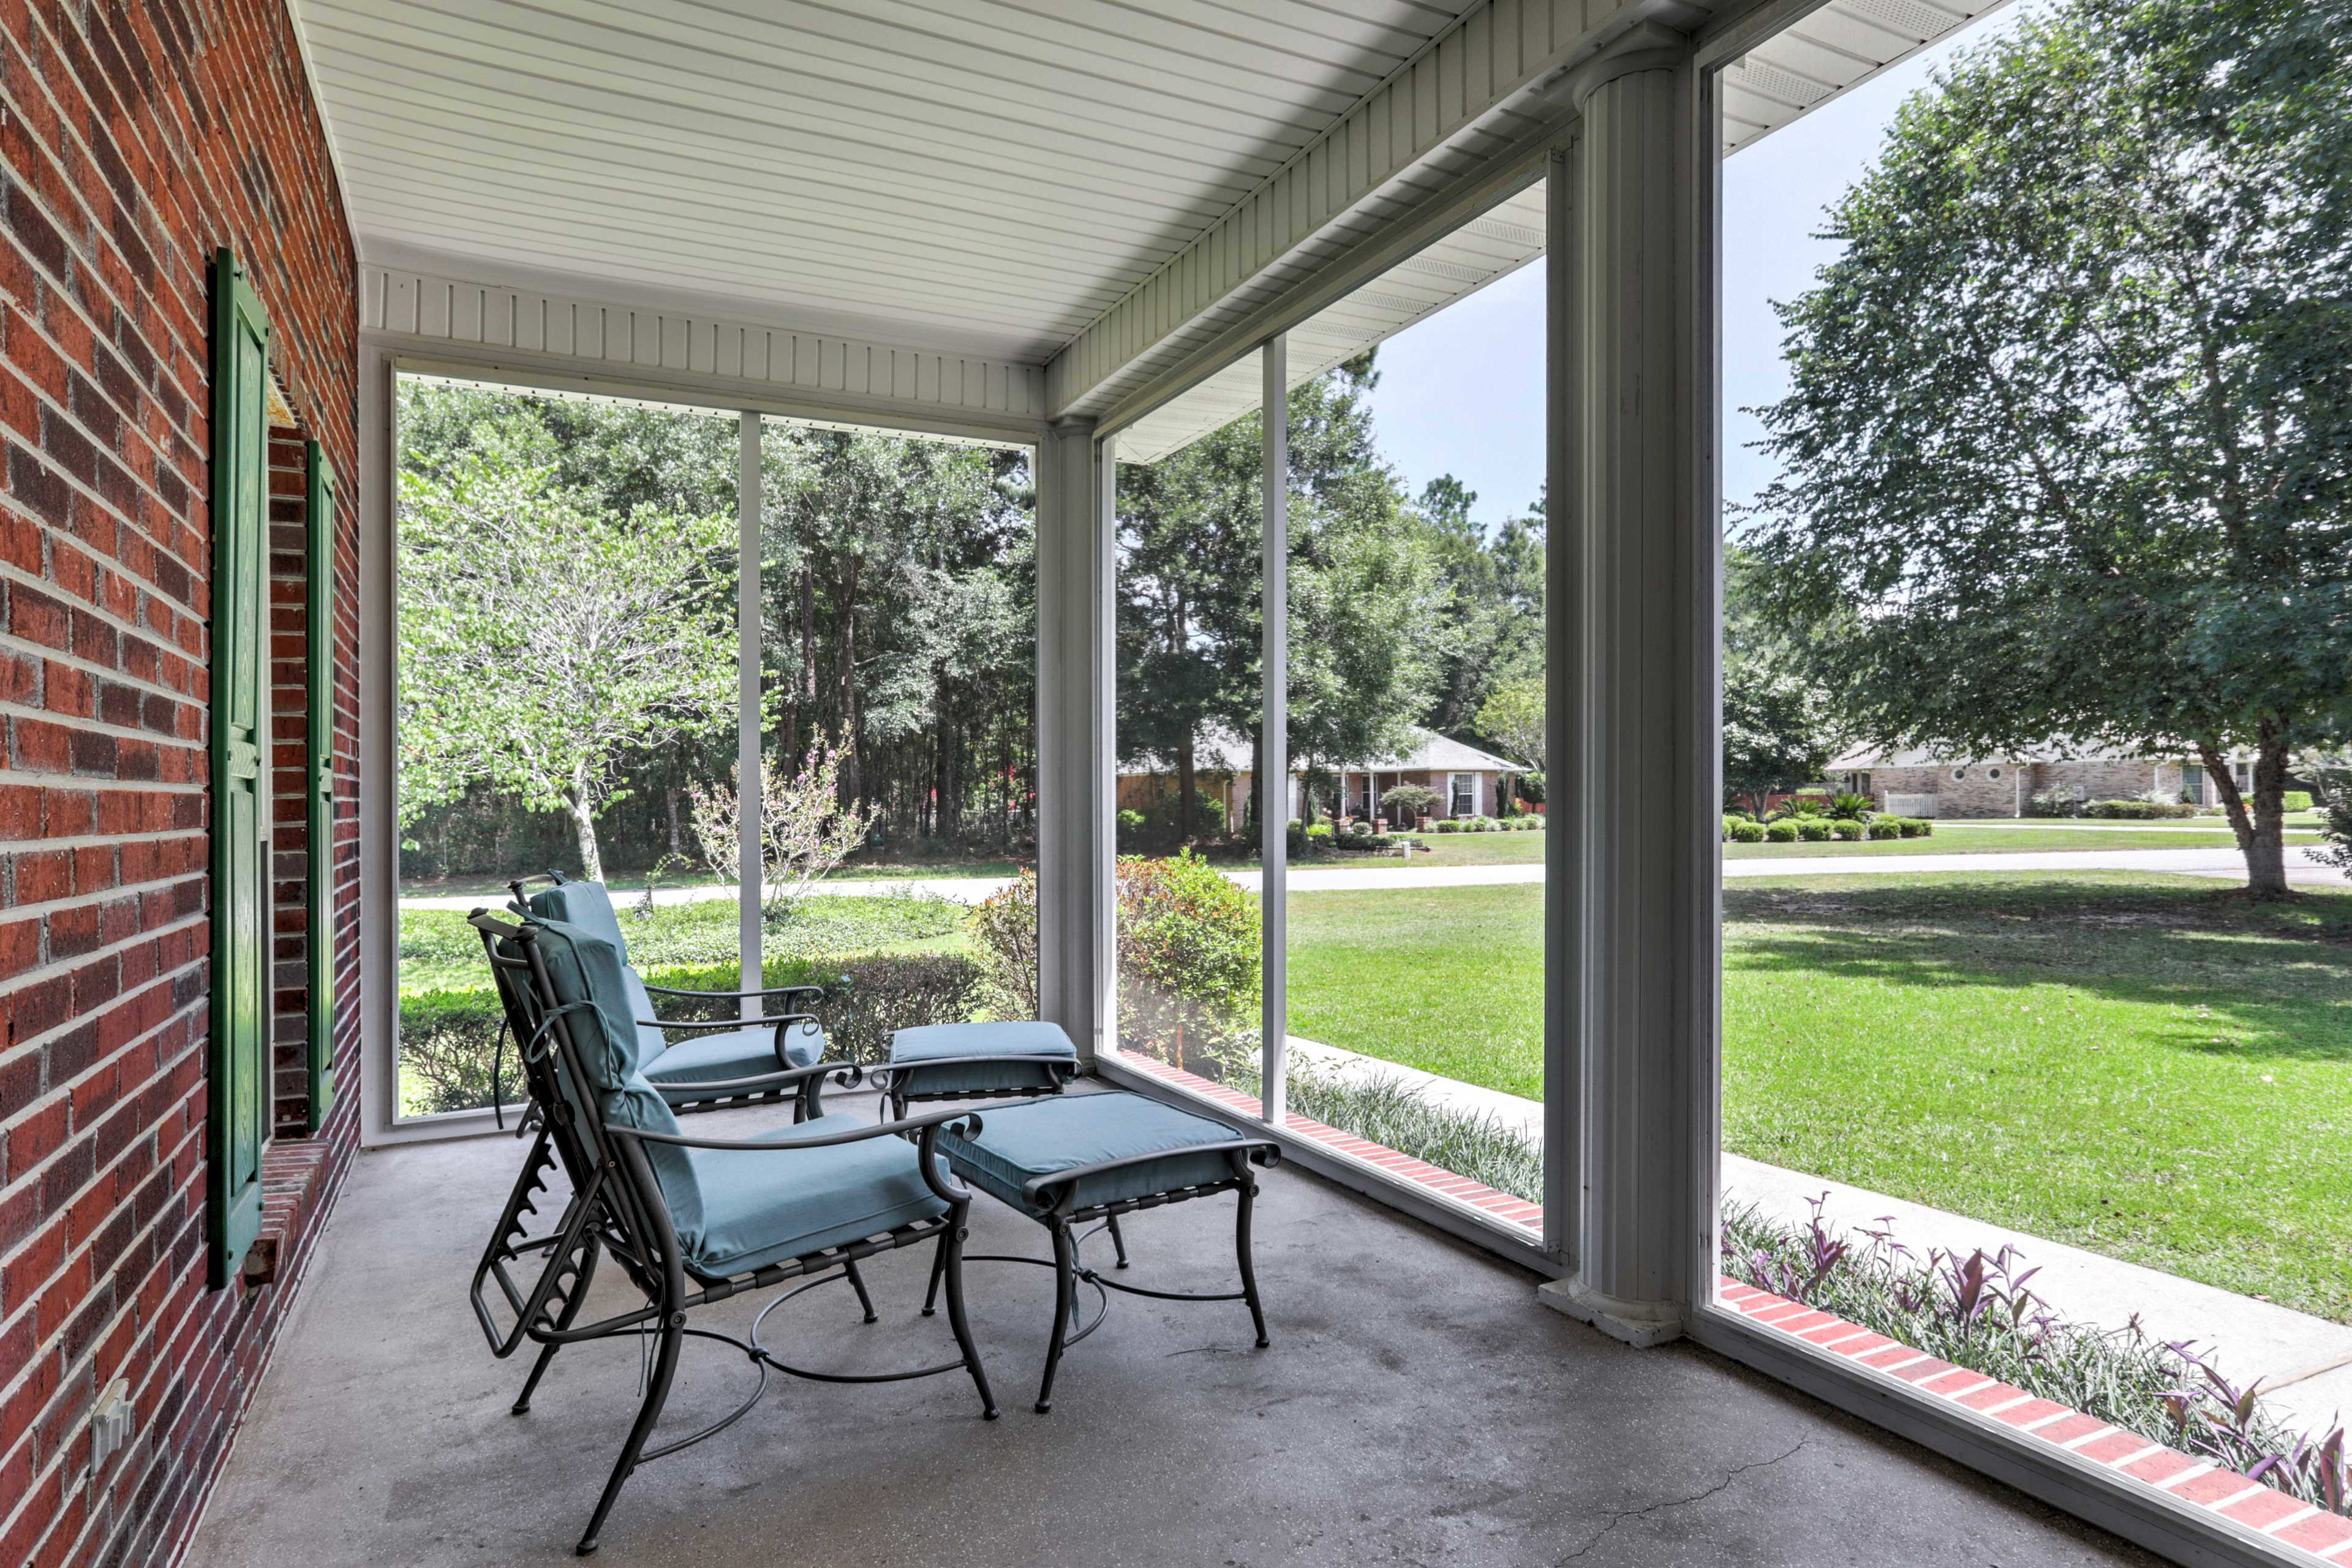 Sip your morning coffee outside on the screened-in porch.